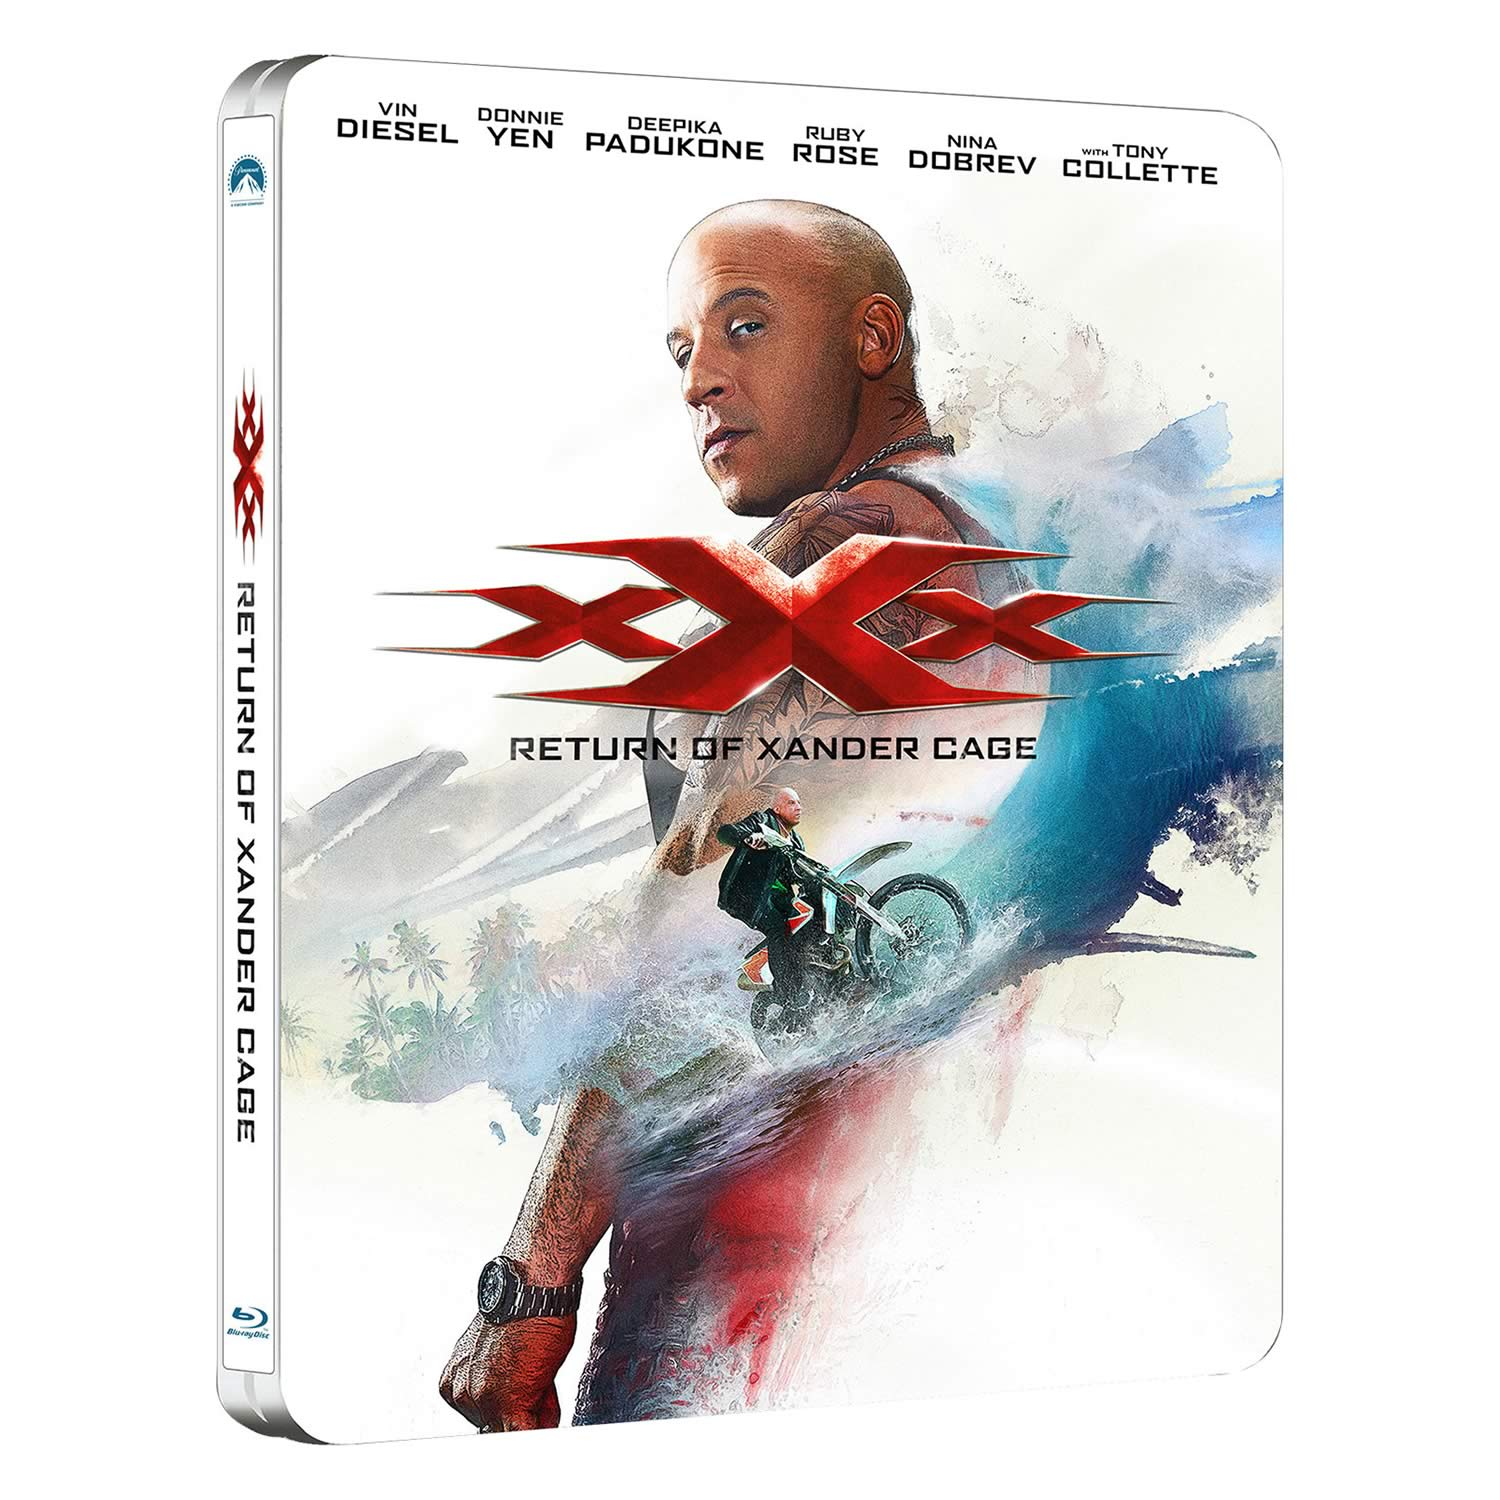 XXX: RETURN OF XANDER CAGE 3D Limited Edition Steelbook (BLU-RAY 3D + BLU-RAY)